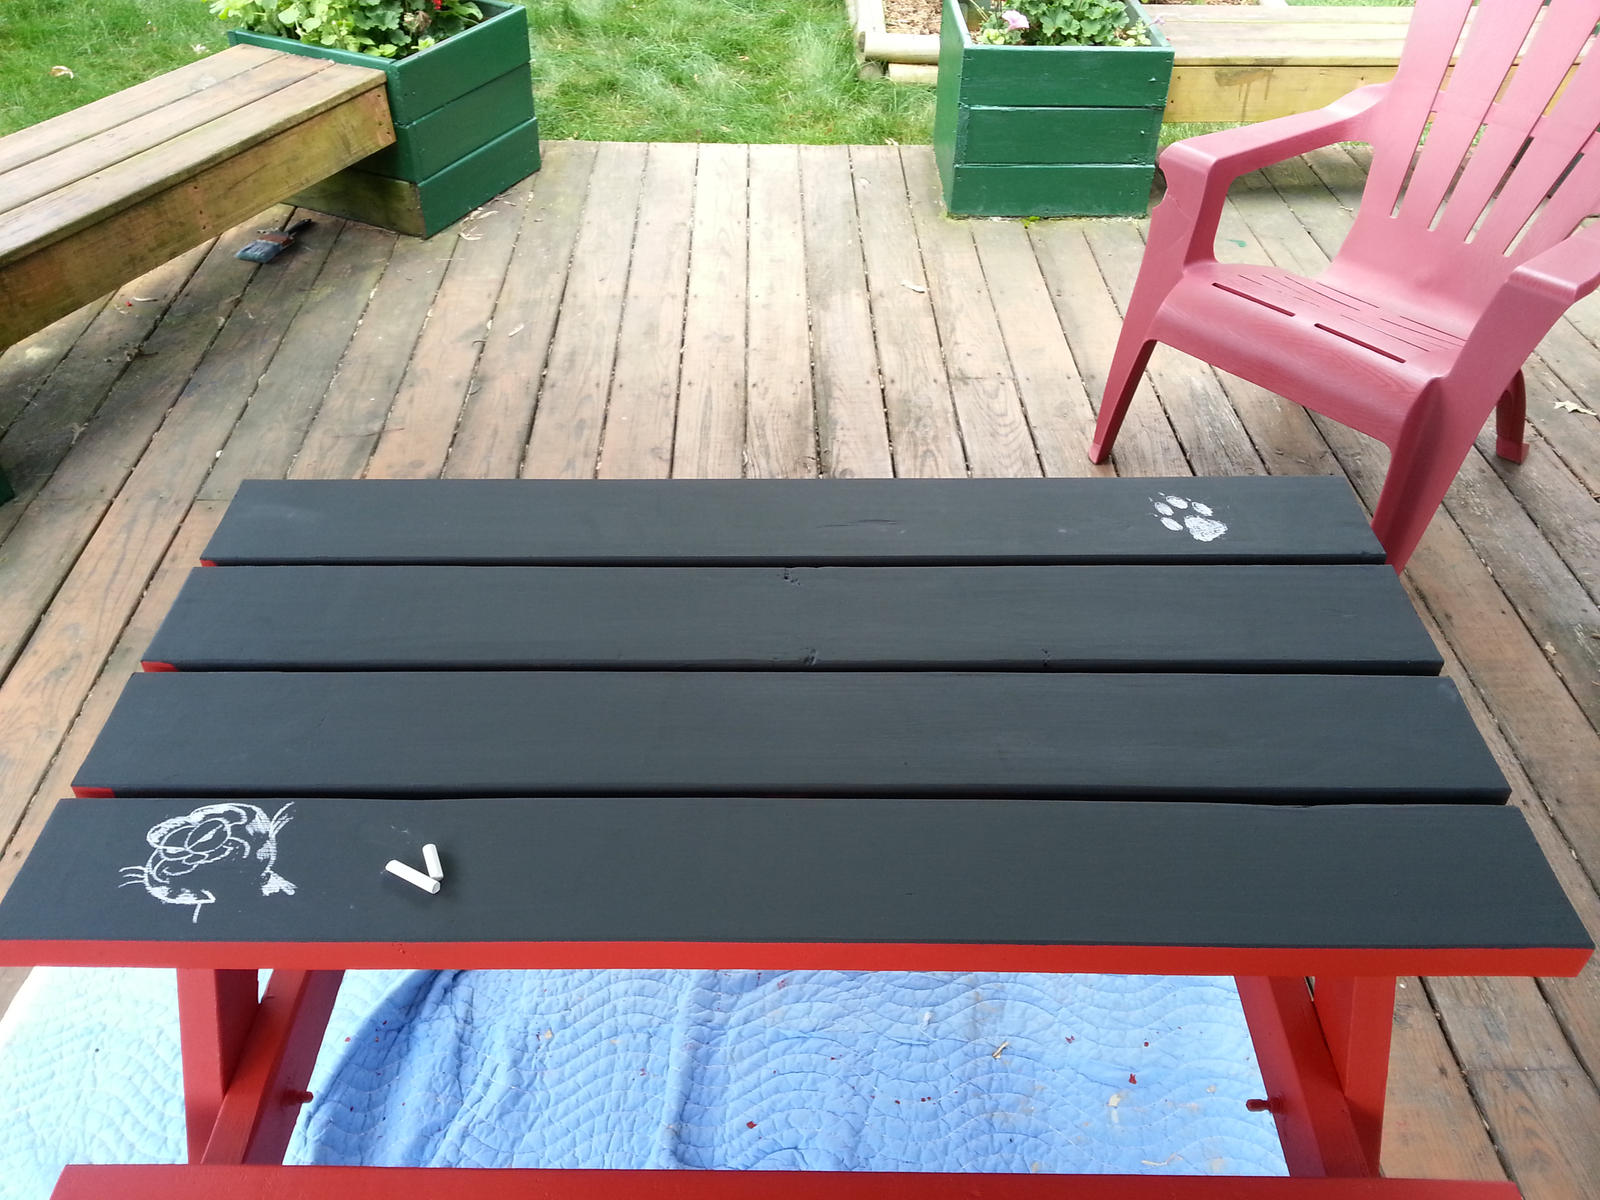 Kids Picnic Table By Portabletaz On DeviantArt - Picnic table paint colors